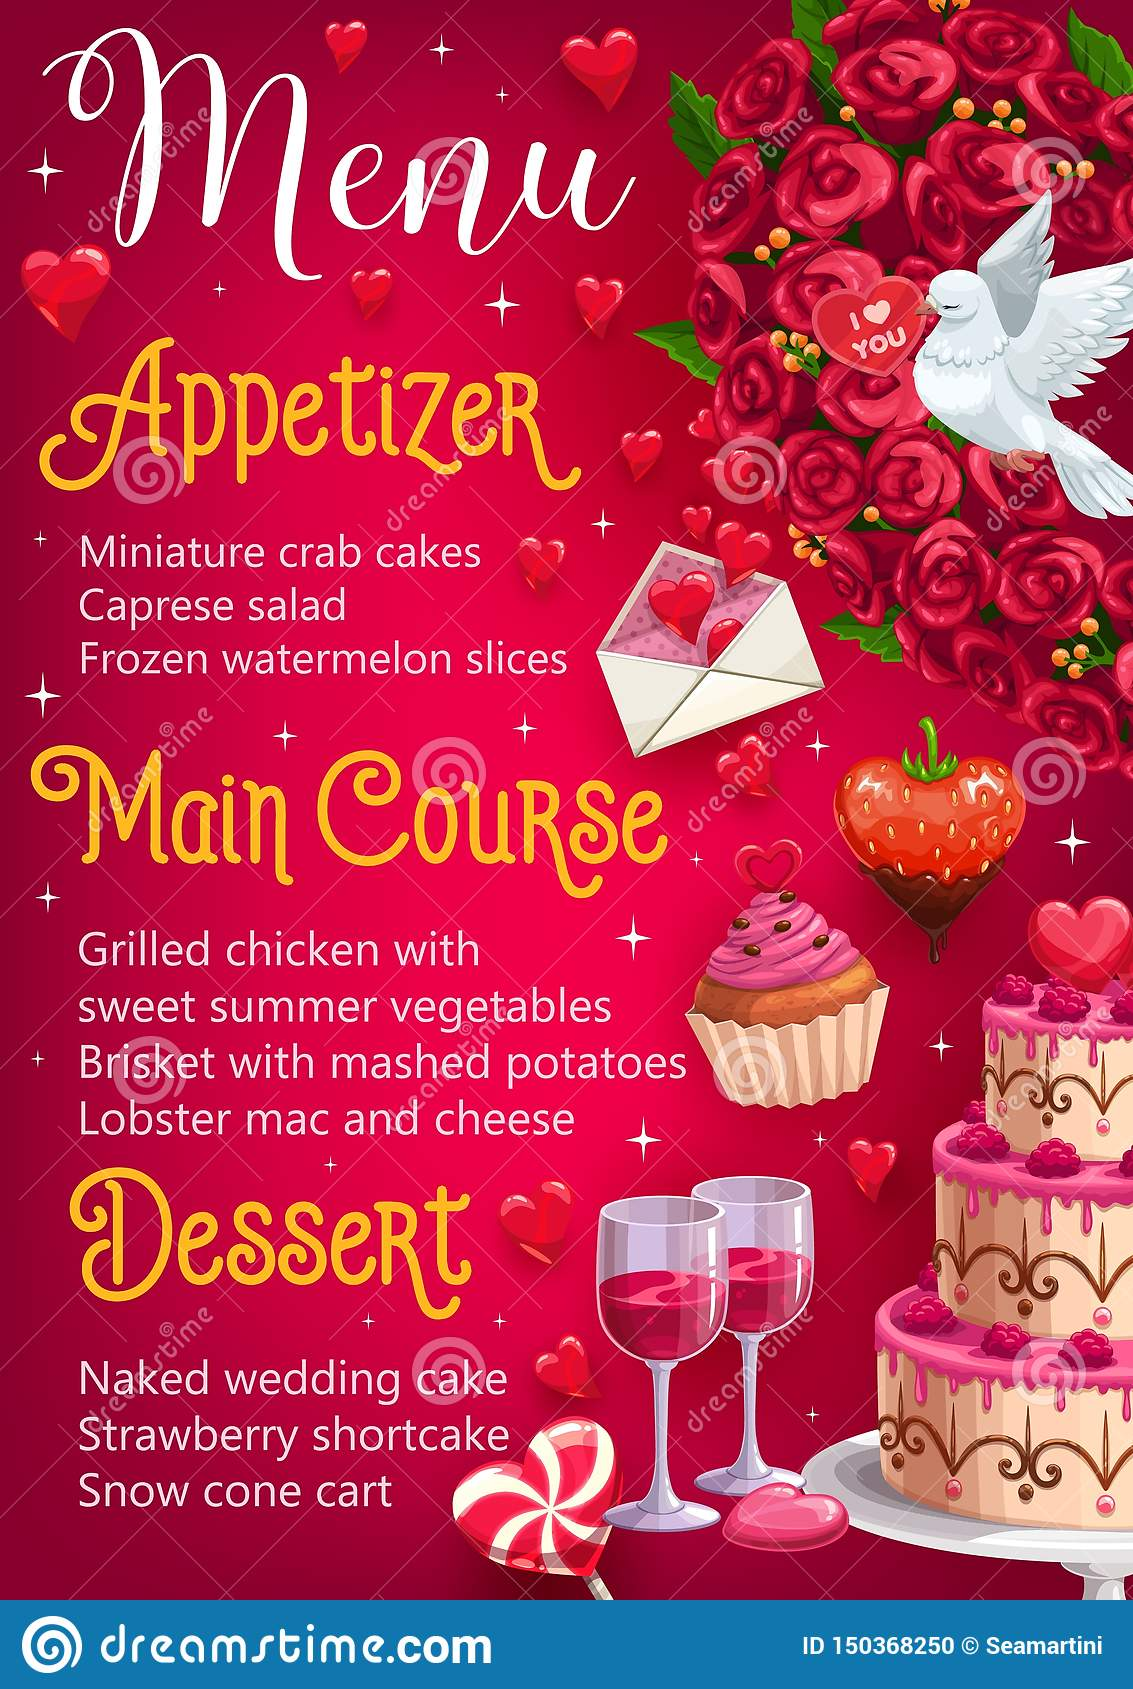 Wedding Day Menu Main Courses Desserts Appetizer Stock Vector